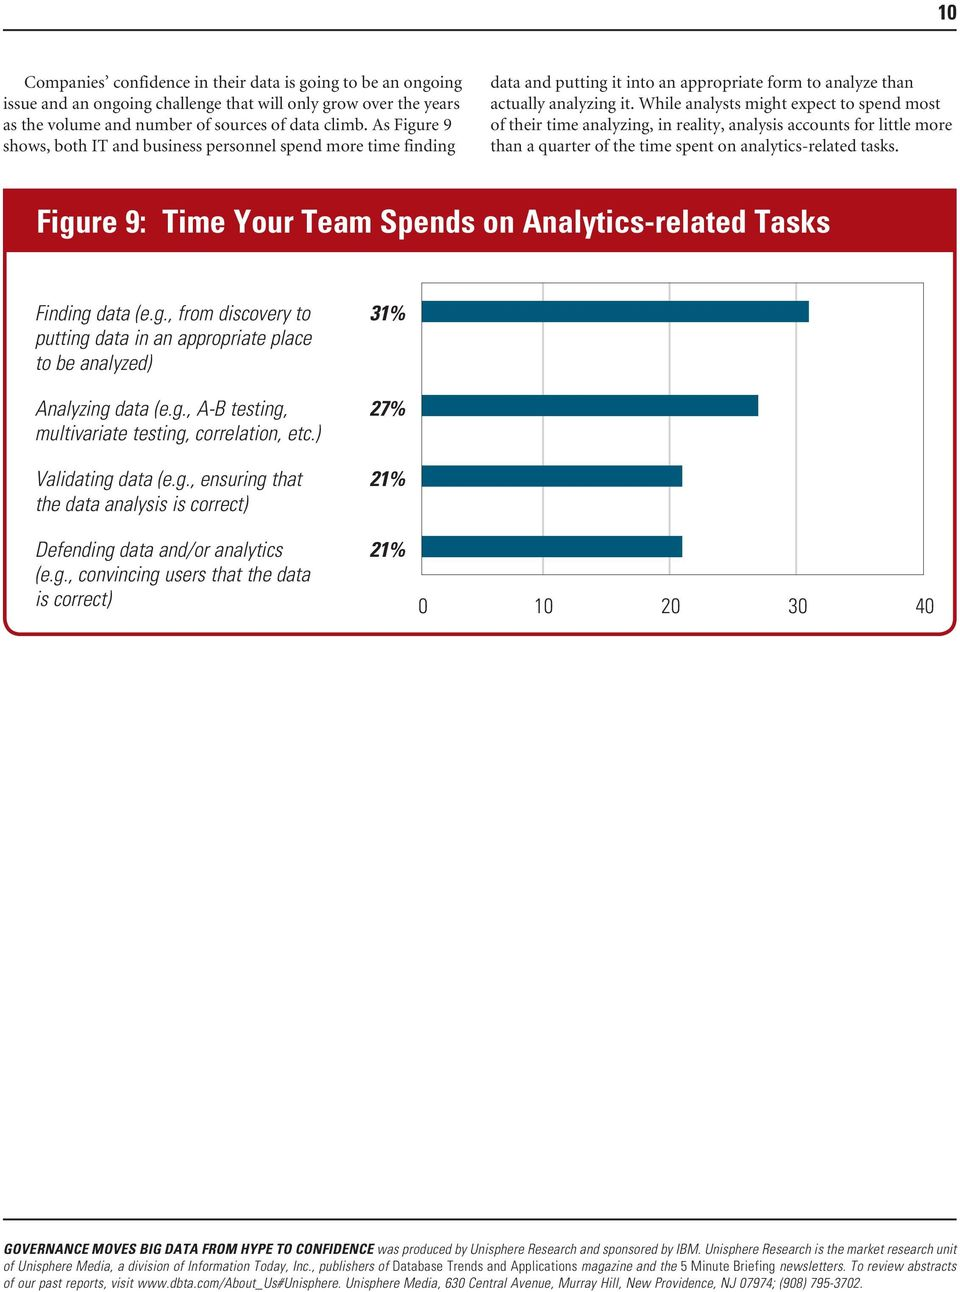 While analysts might expect to spend most of their time analyzing, in reality, analysis accounts for little more than a quarter of the time spent on analytics-related tasks.